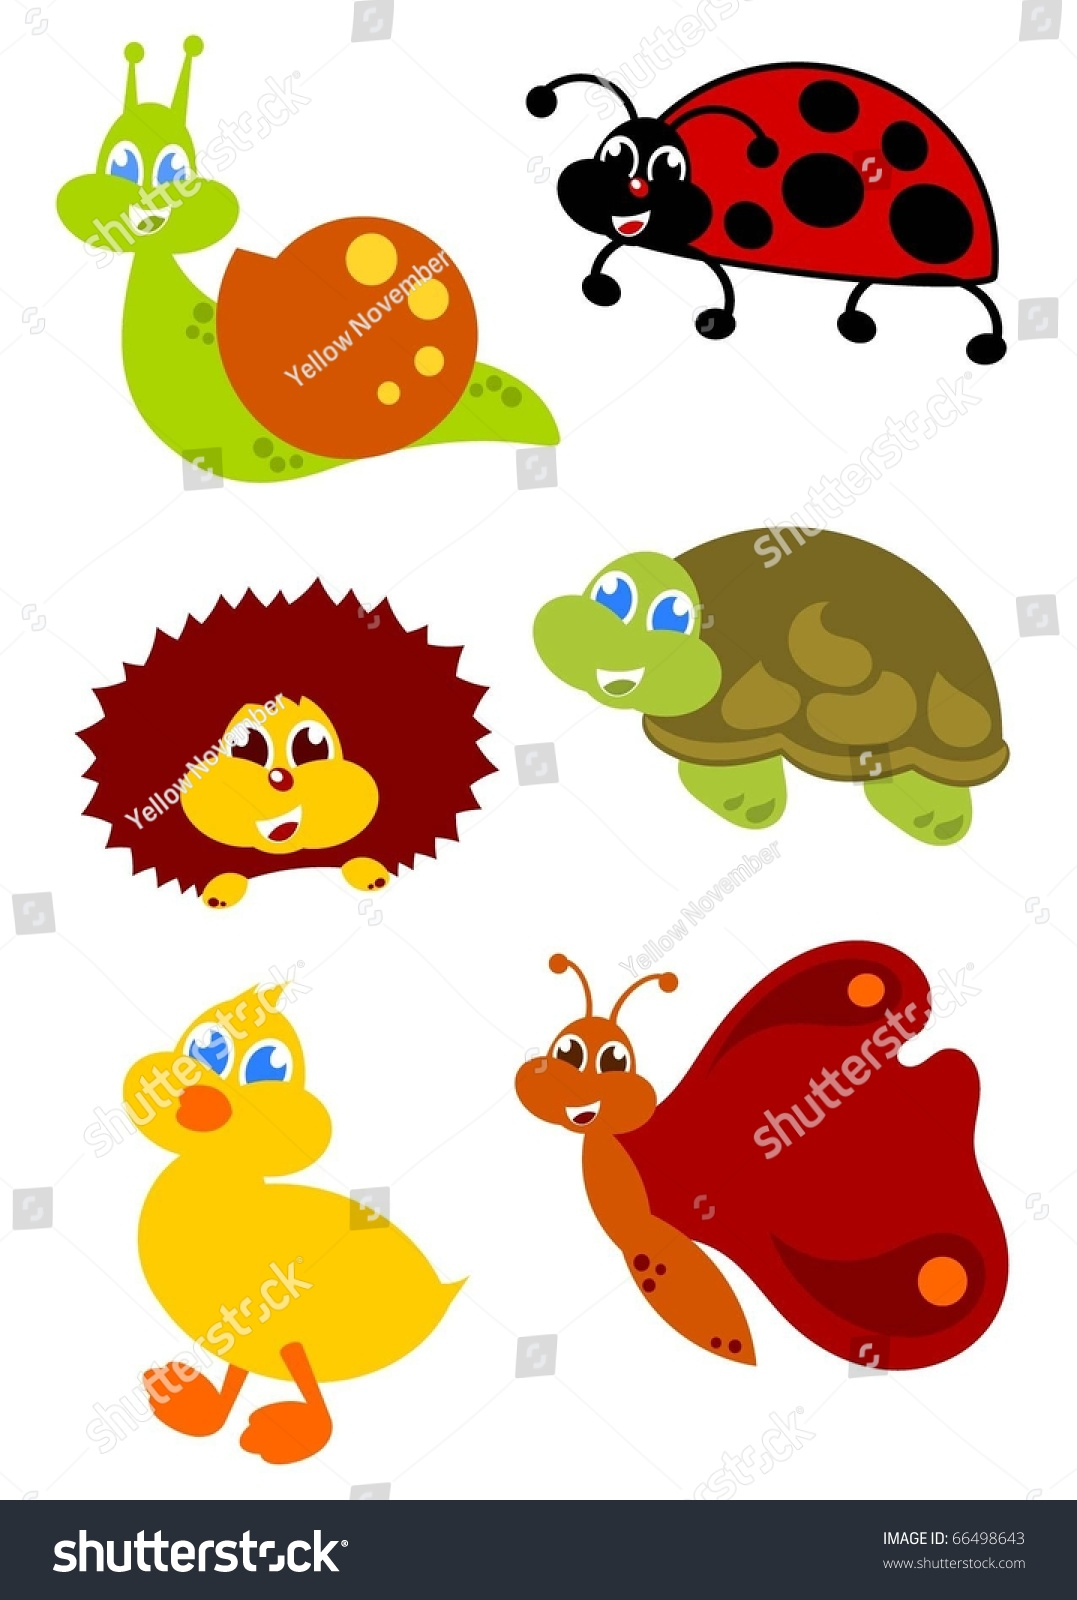 Little Garden Animals Icon Set Stock Vector 66498643 Shutterstock